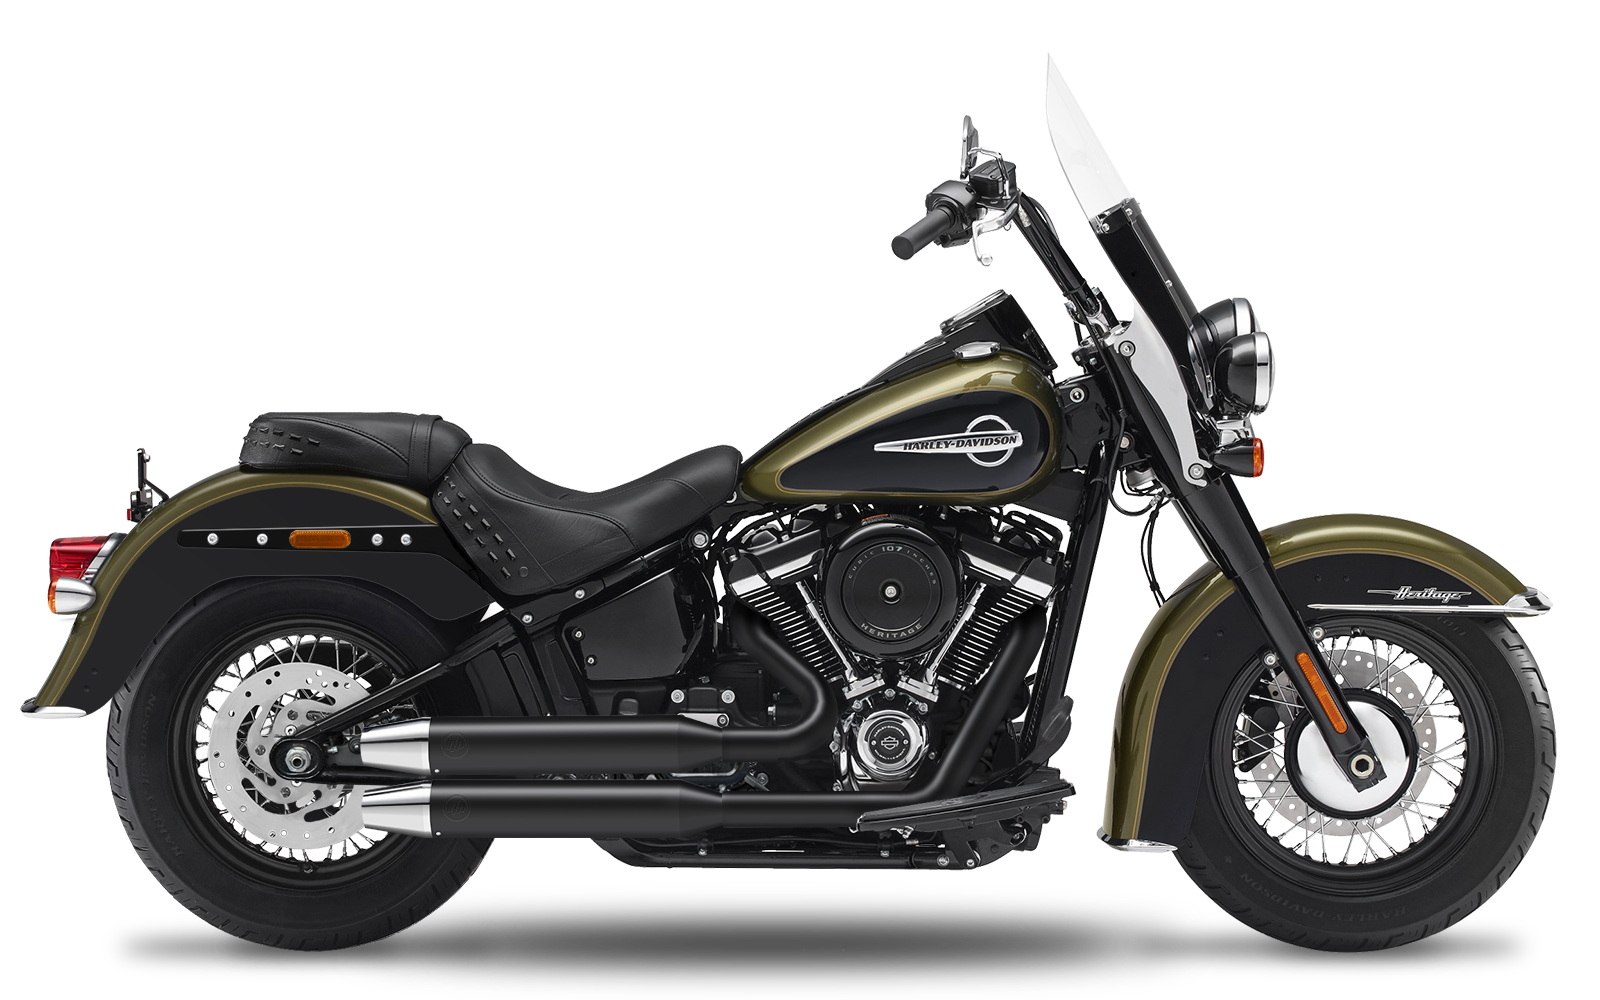 Softail - Heritage Classic - ME107 - 2021 - Complete systems